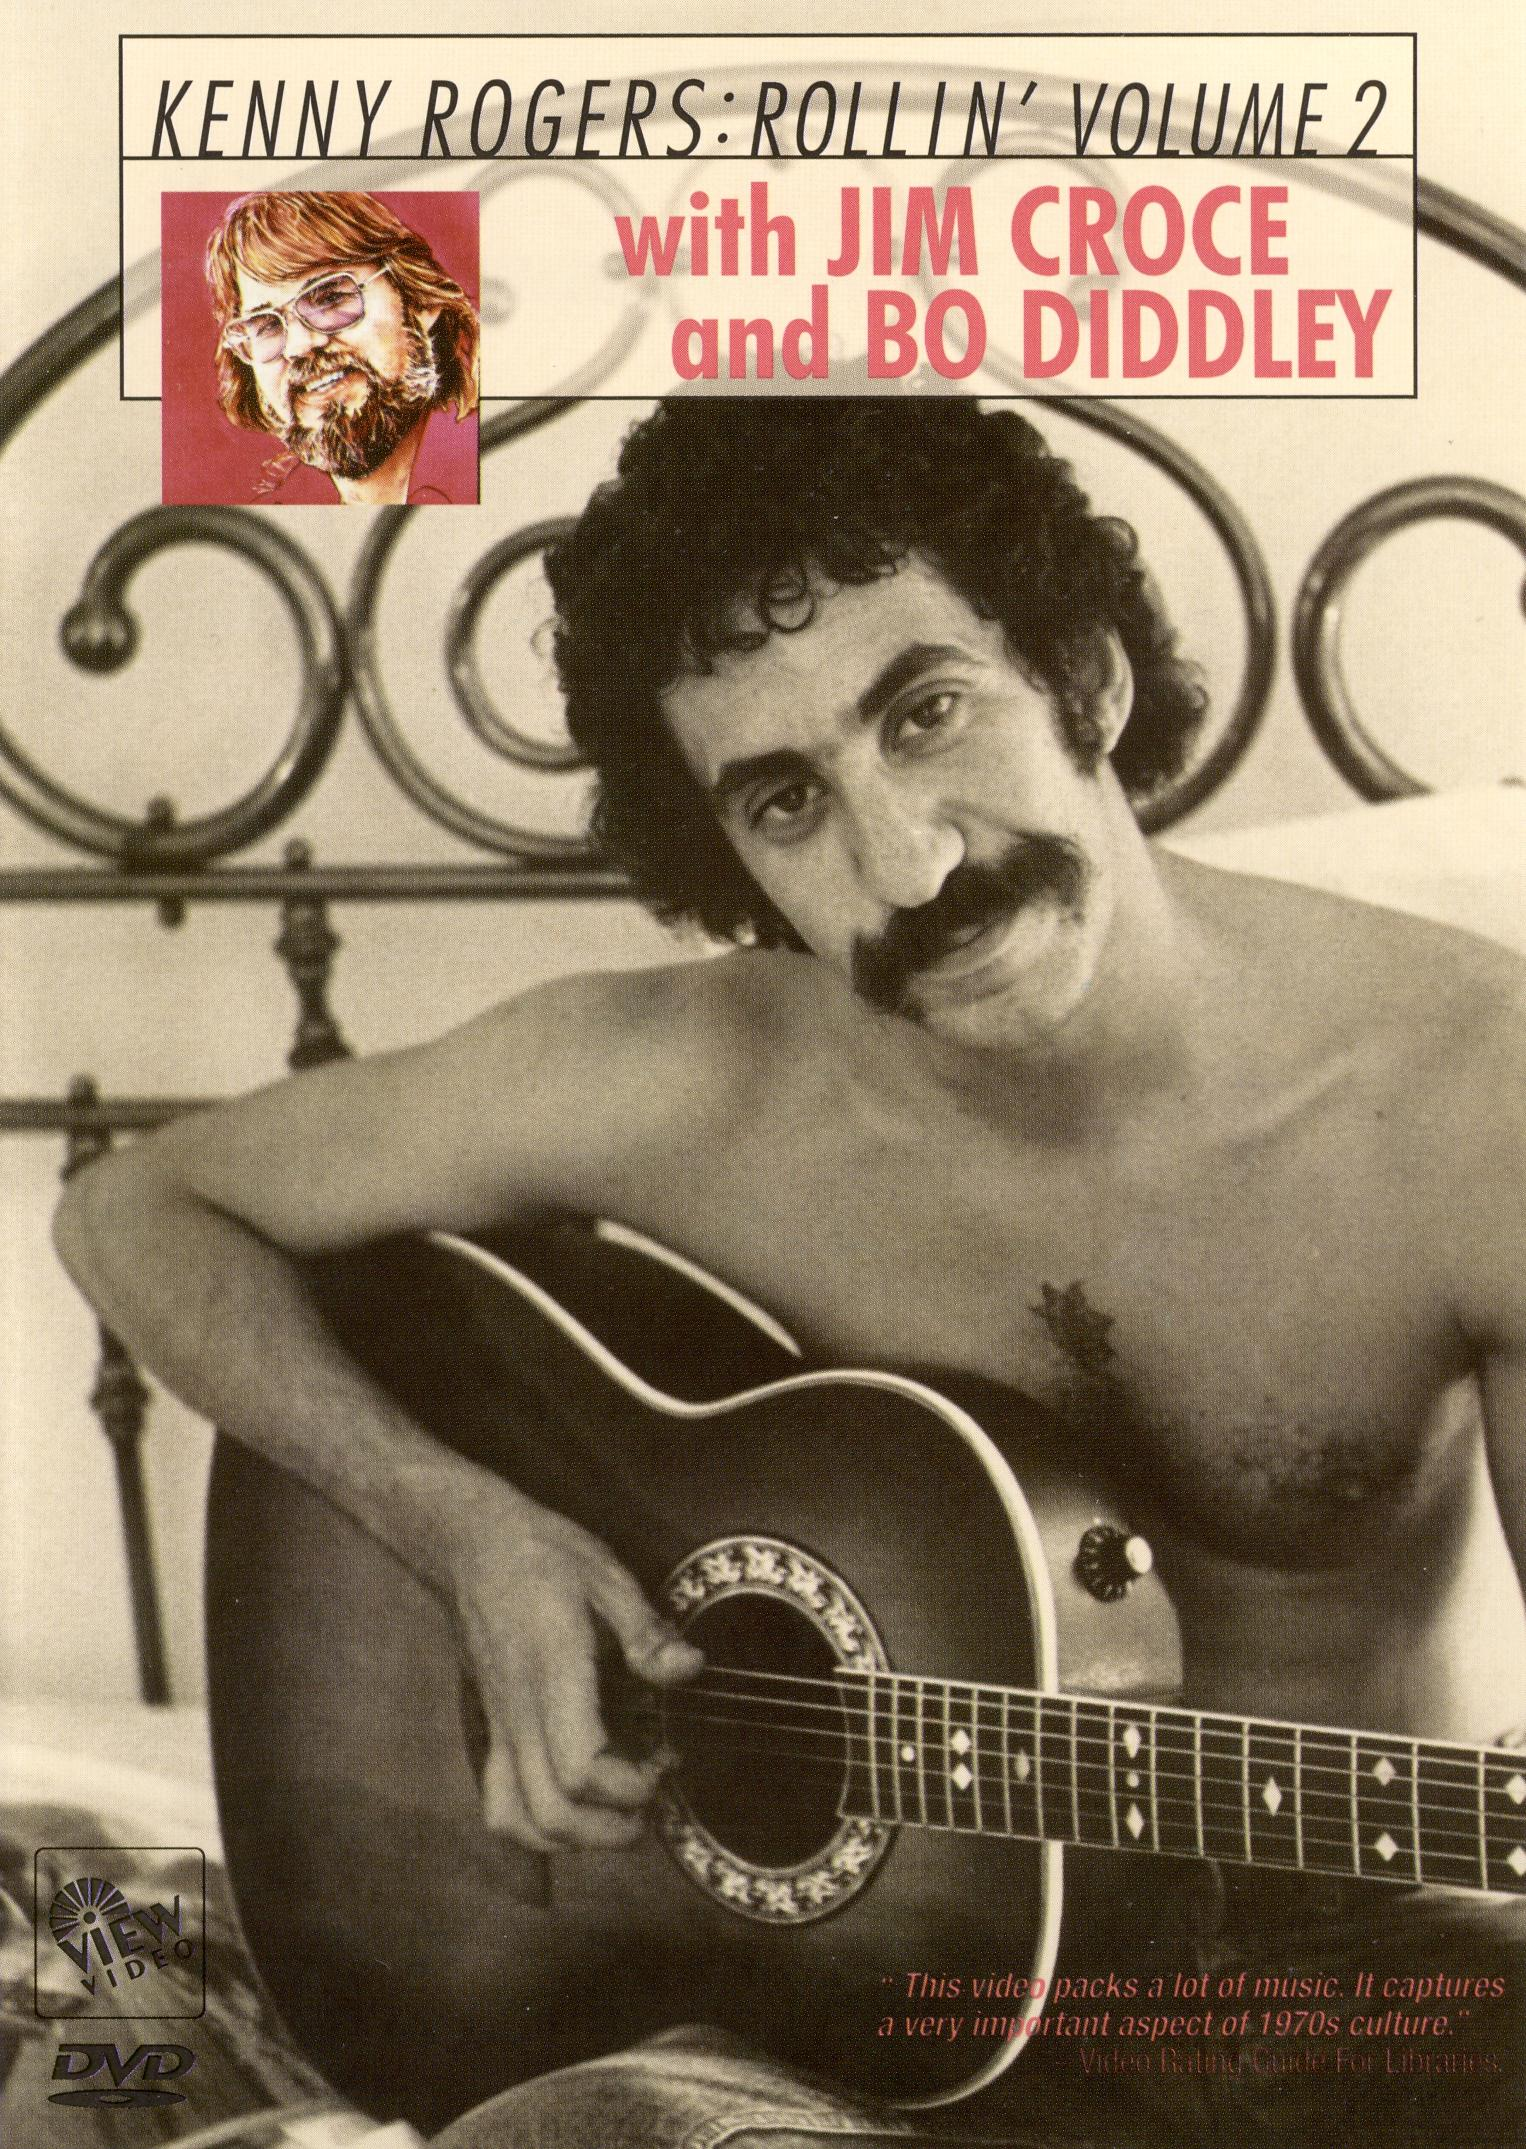 Kenny Rogers & the First Edition, Vol. 2: Rollin' with Jim Croce and Bo Diddley